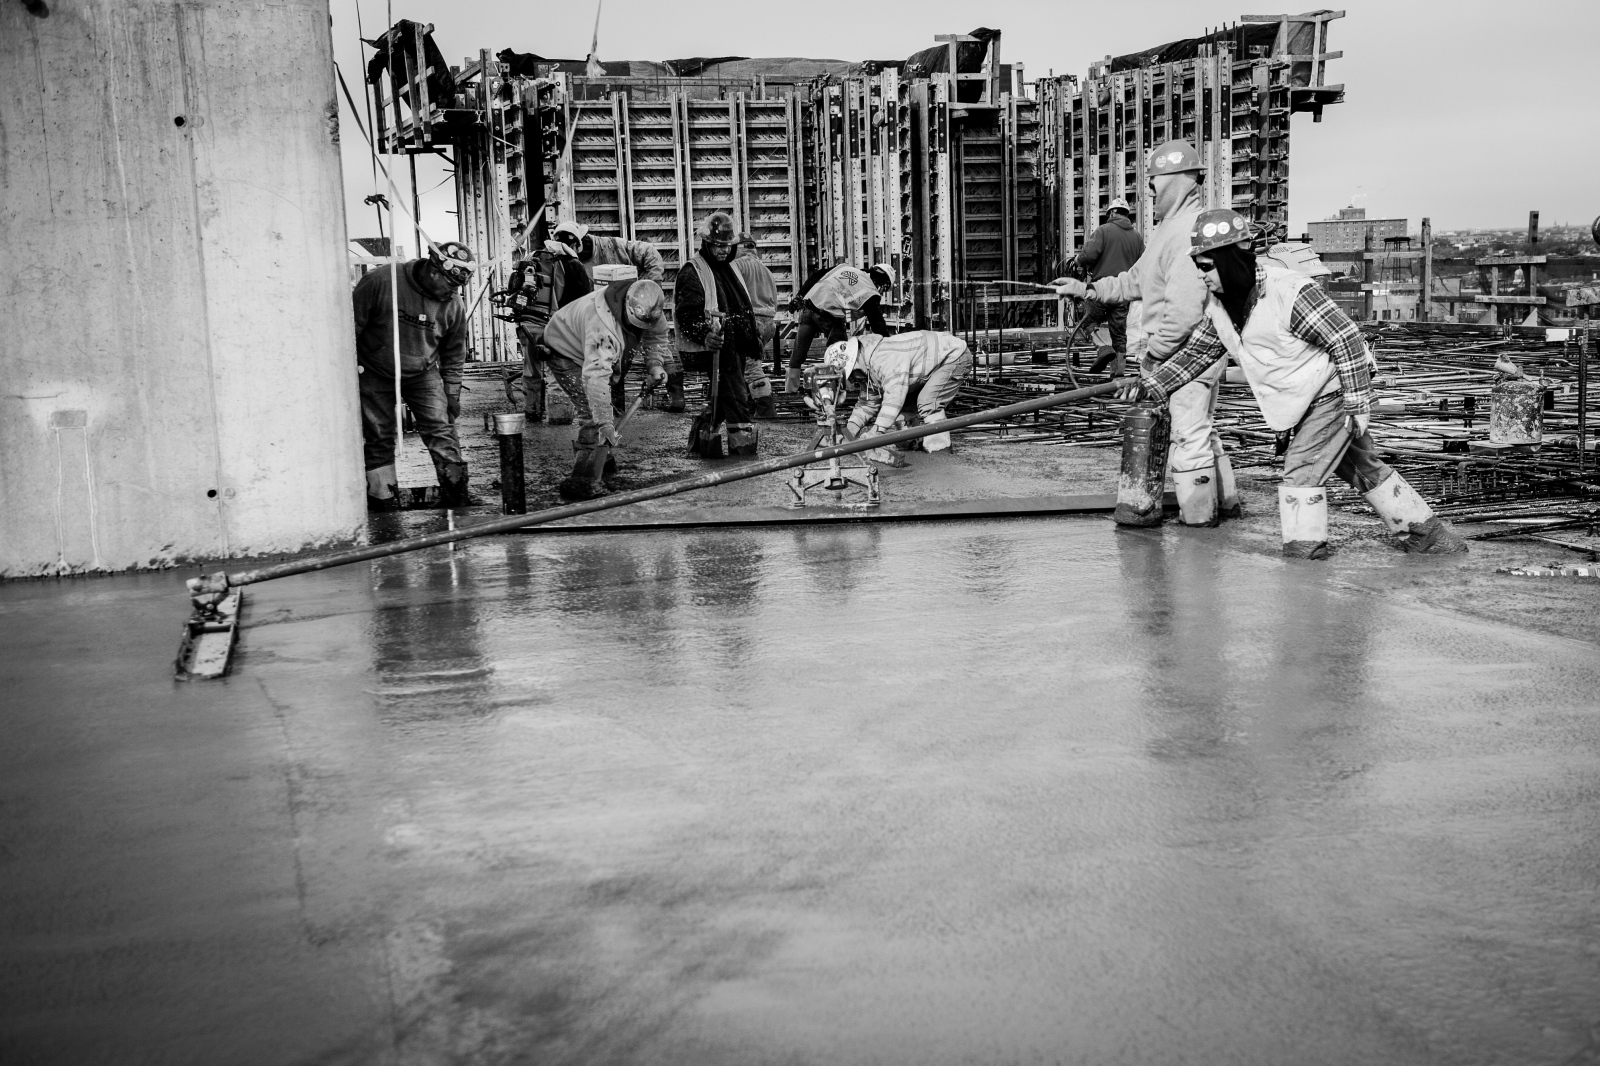 Art and Documentary Photography - Loading CHC_4547.jpg